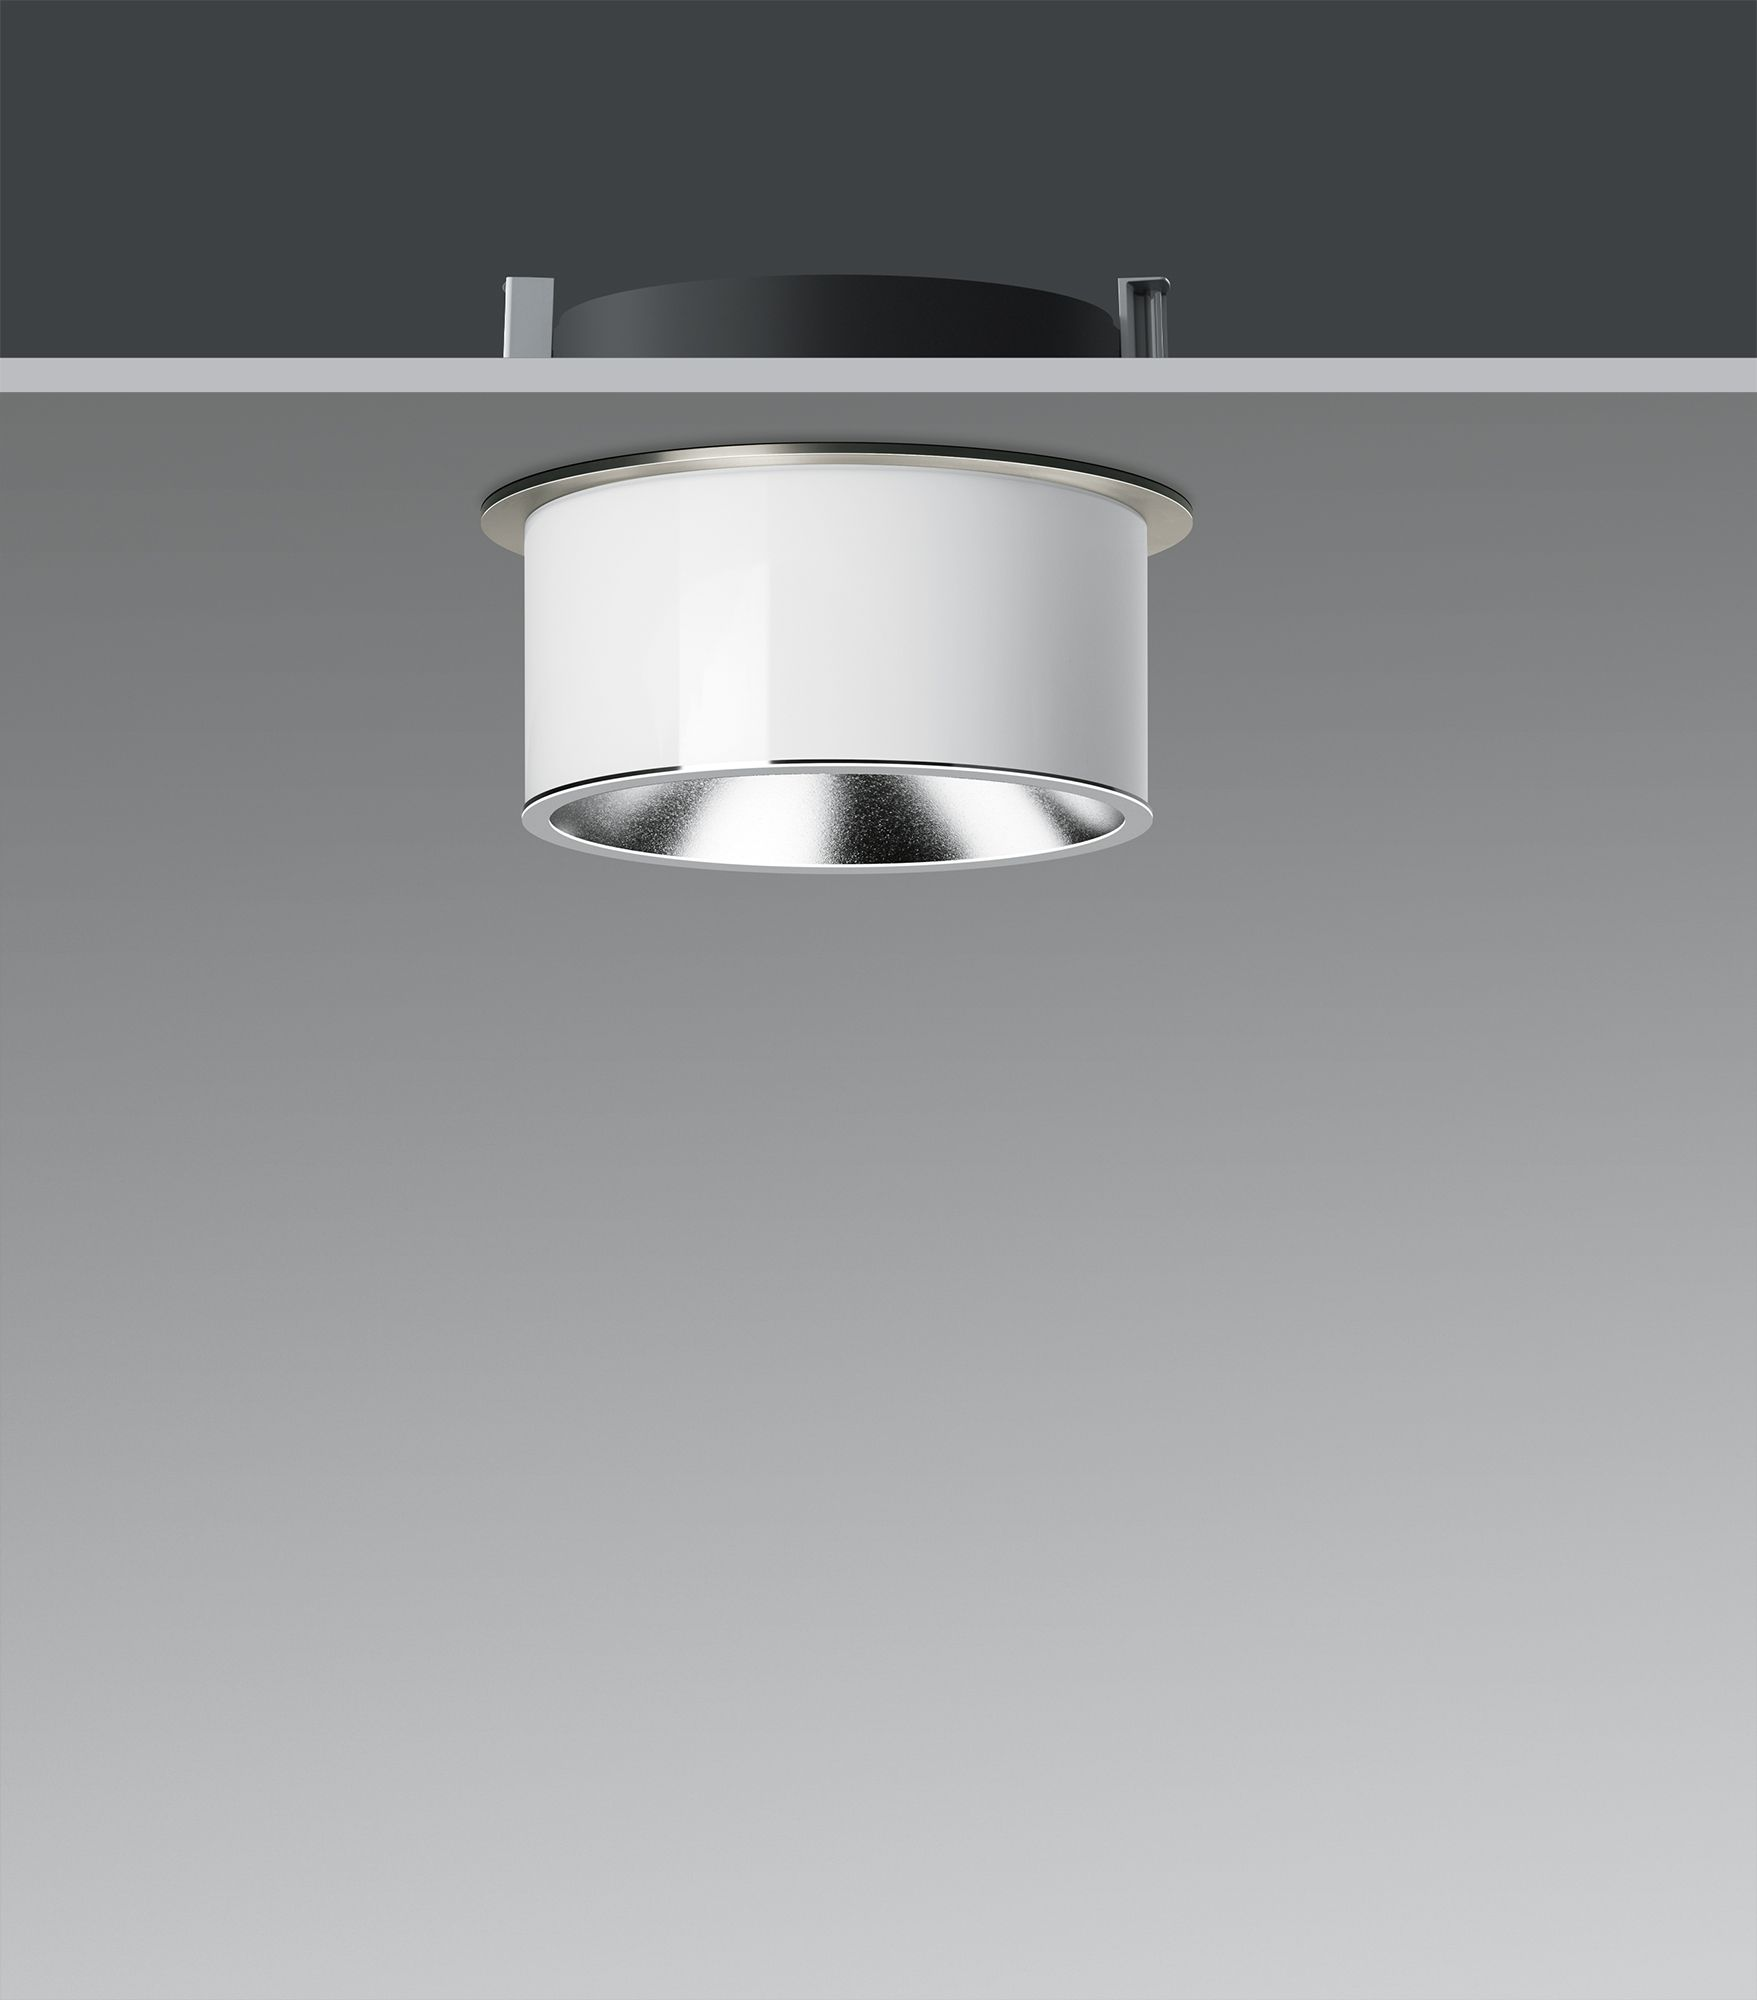 Led Semi Recessed Ceiling Luminaires Downlights With 3 Ply Opal